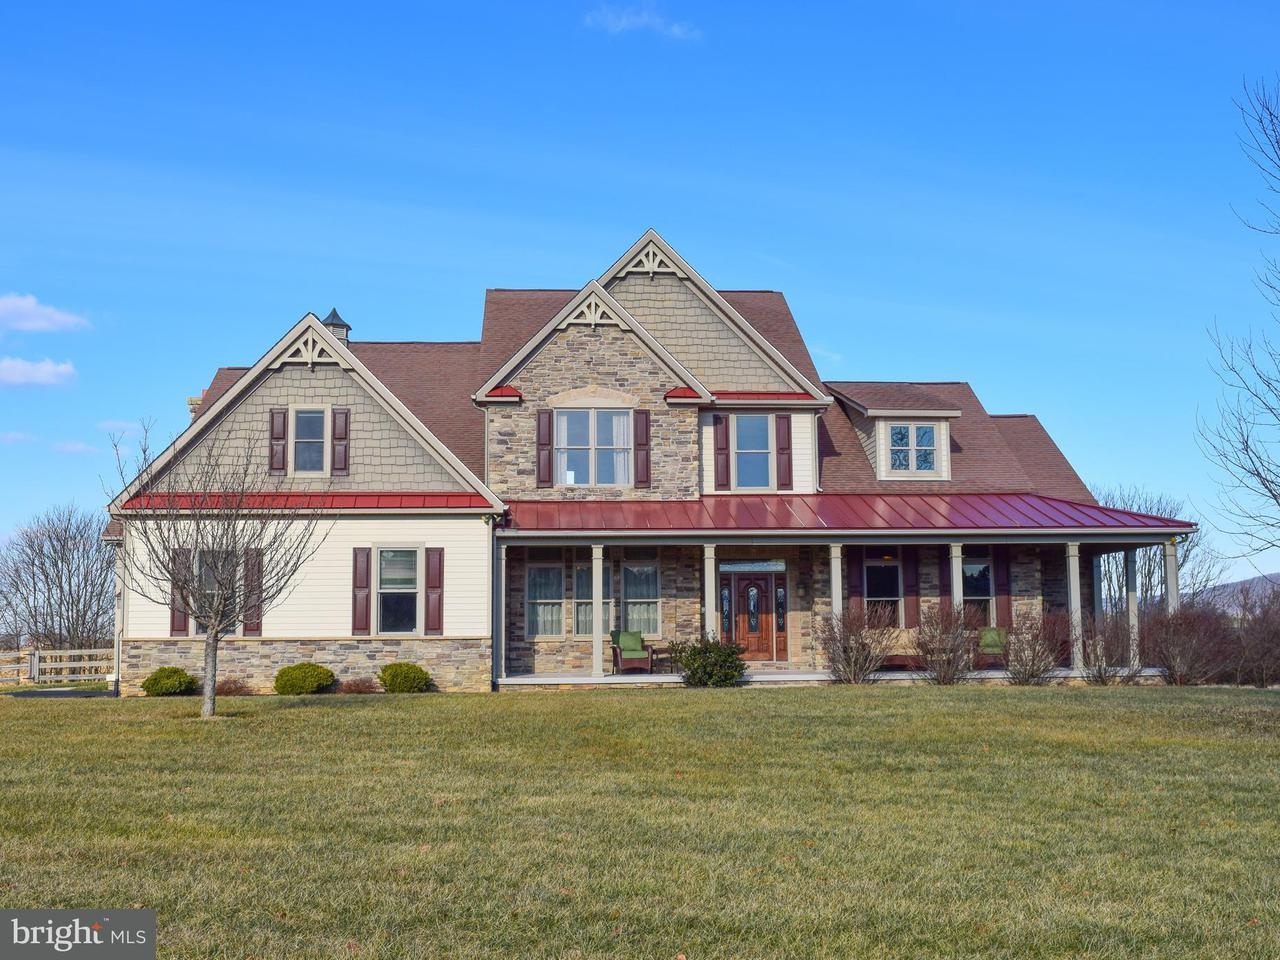 Single Family Home for Sale at 20112 Stone Ct W 20112 Stone Ct W Keedysville, Maryland 21756 United States